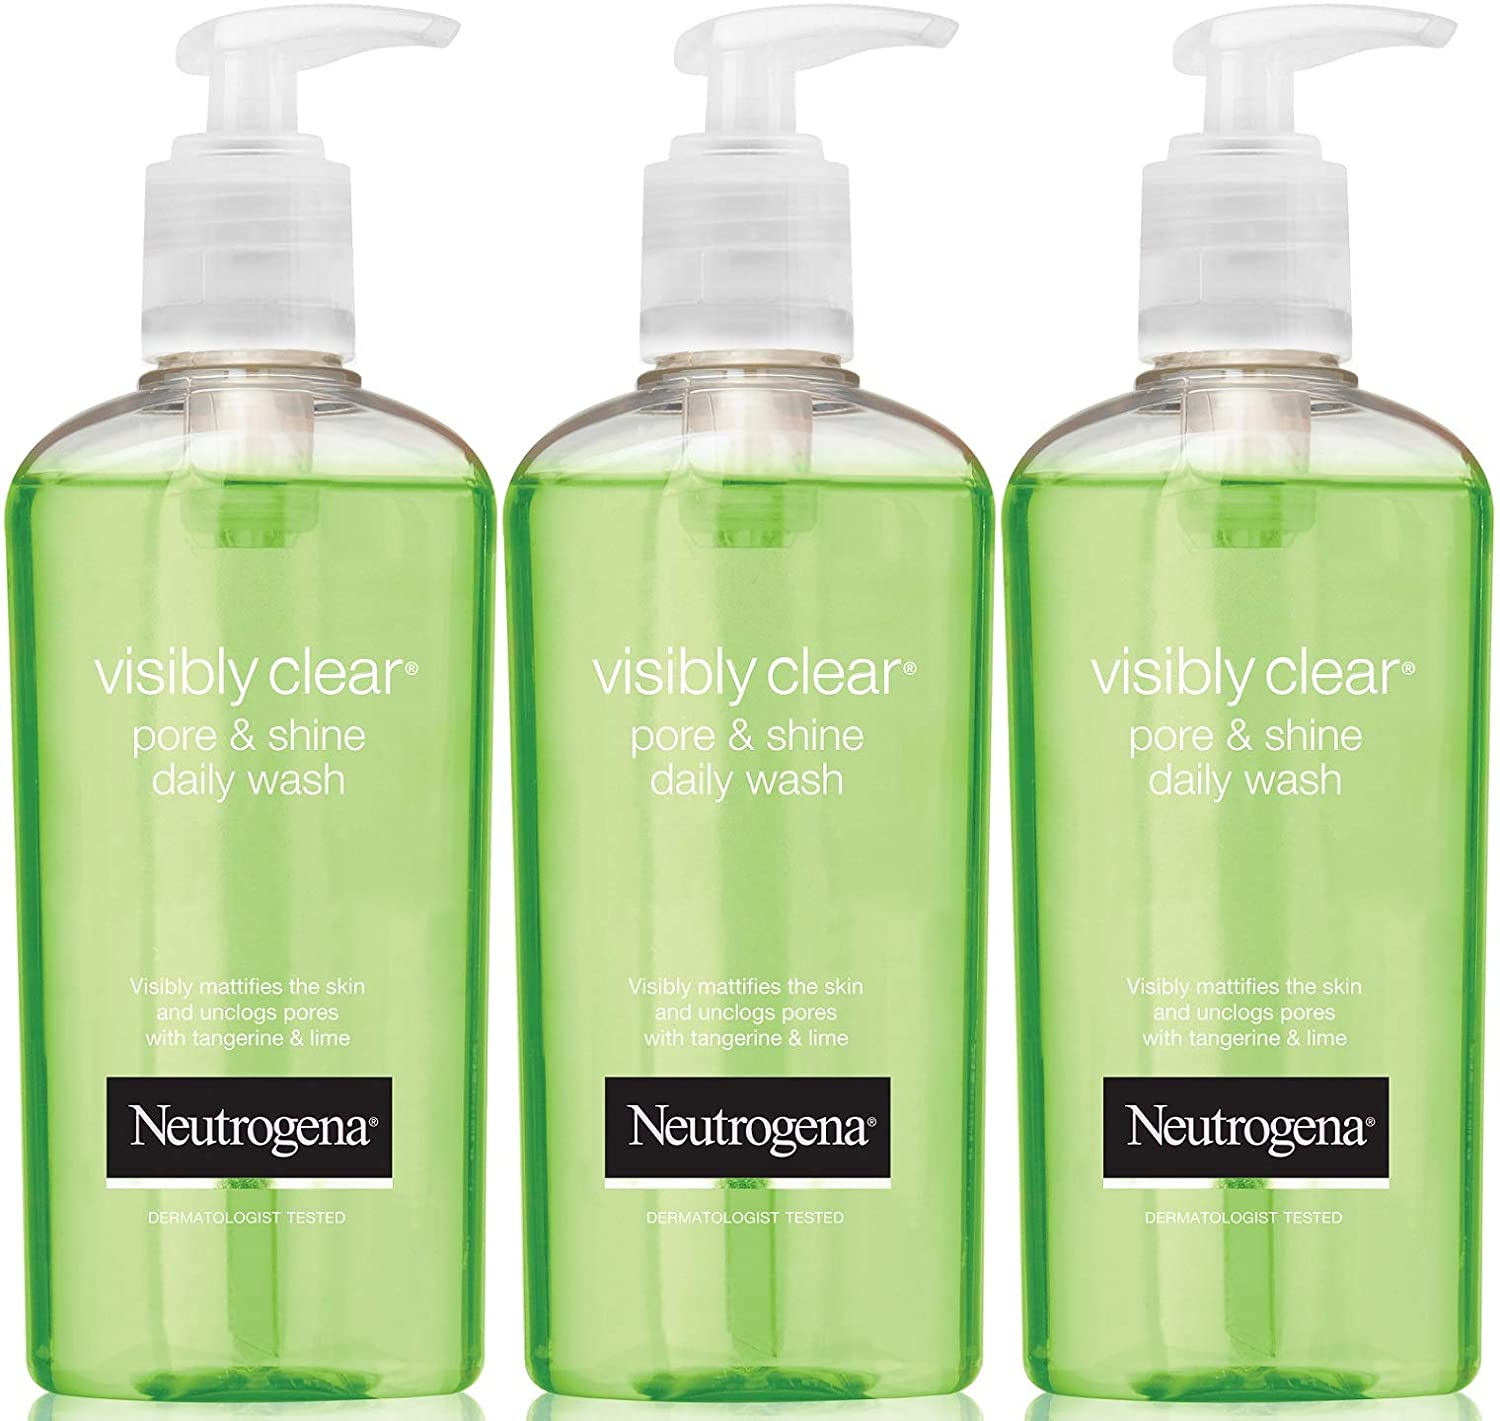 Neutrogena Visibly Clear Pore and Shine Daily Wash